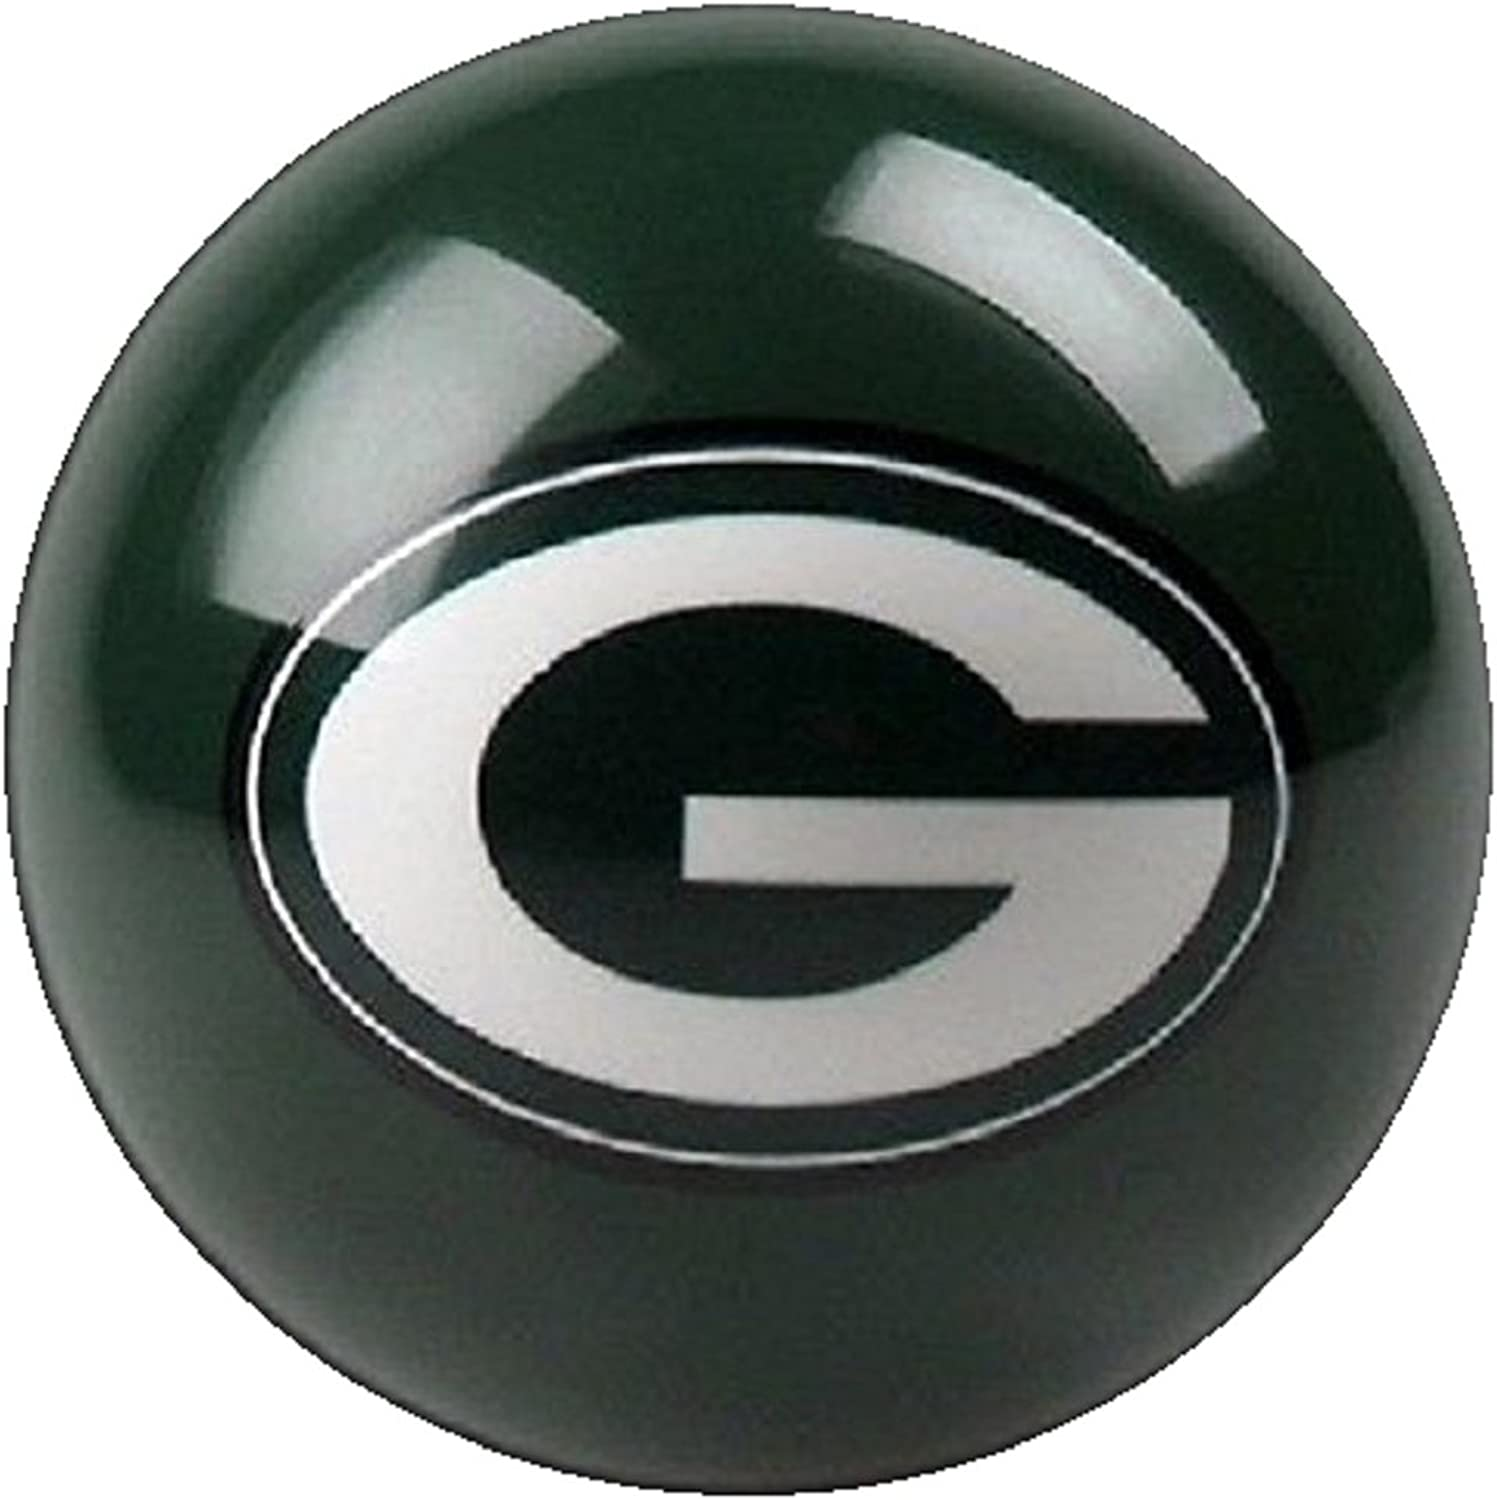 NFL Licensed Green Bay Packers Billiard Cue Ball